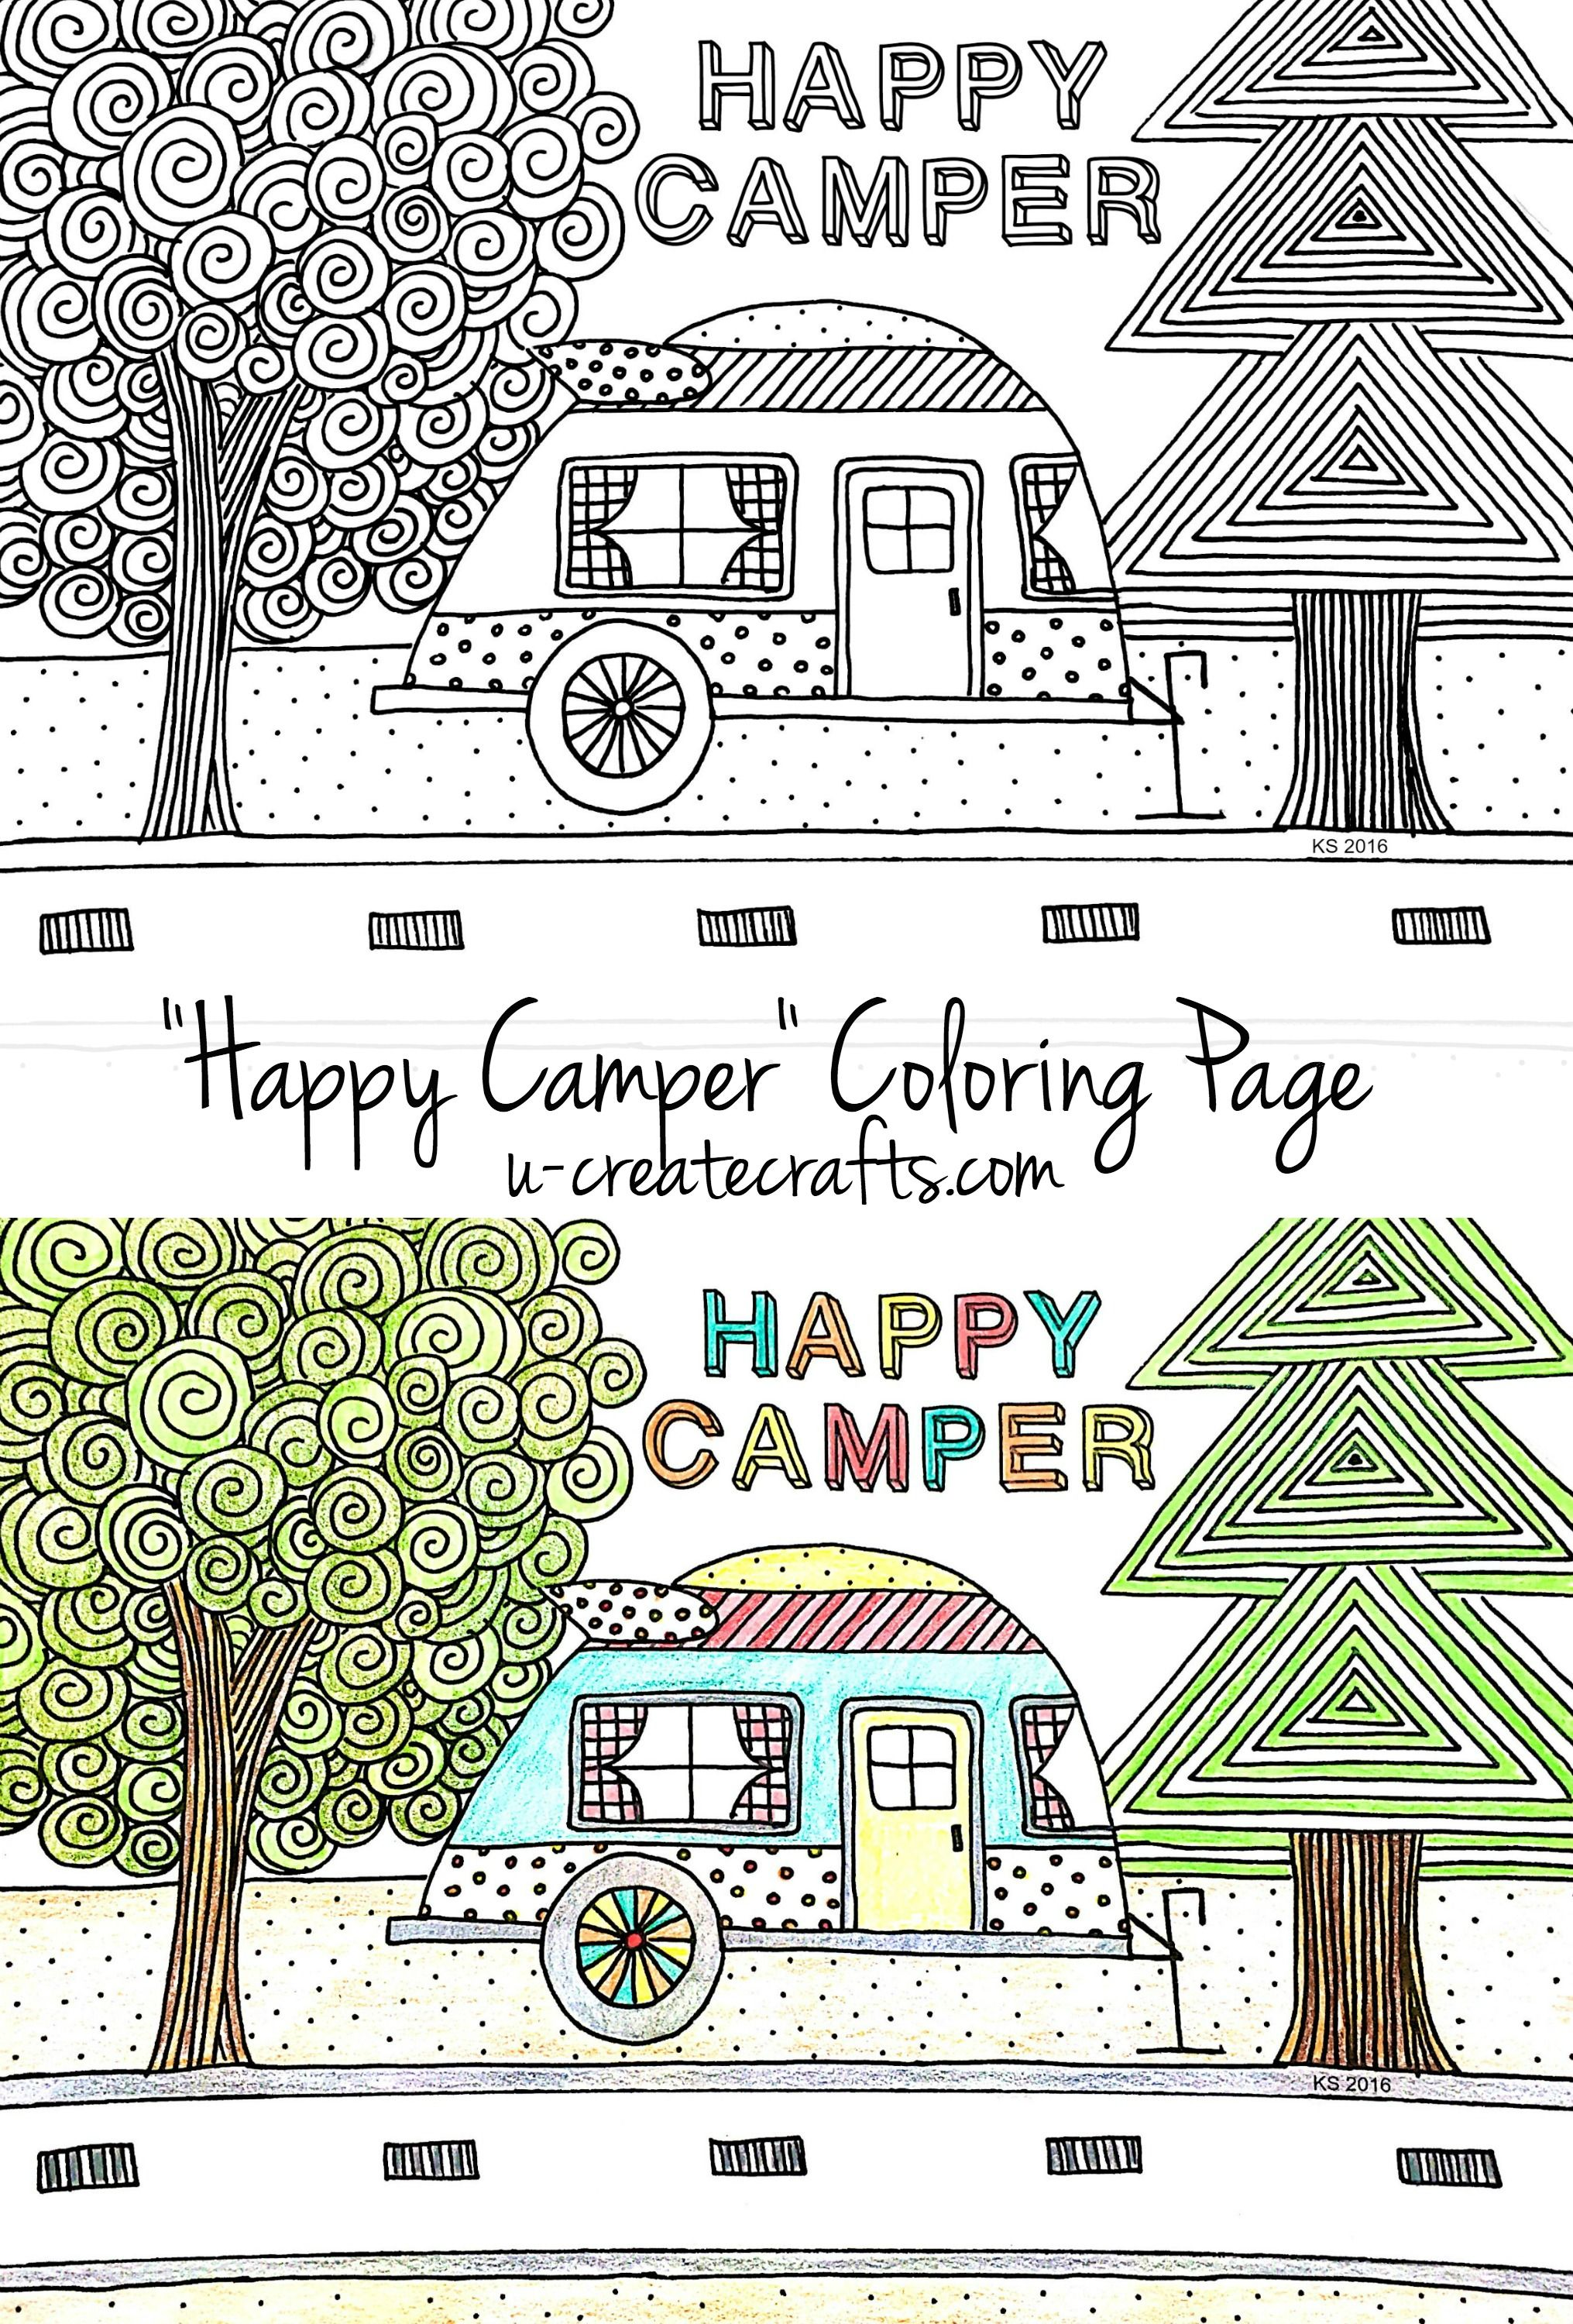 Happy Camper Coloring Page Camping Coloring Pages Happy Camper Book Fair Coloring Pages